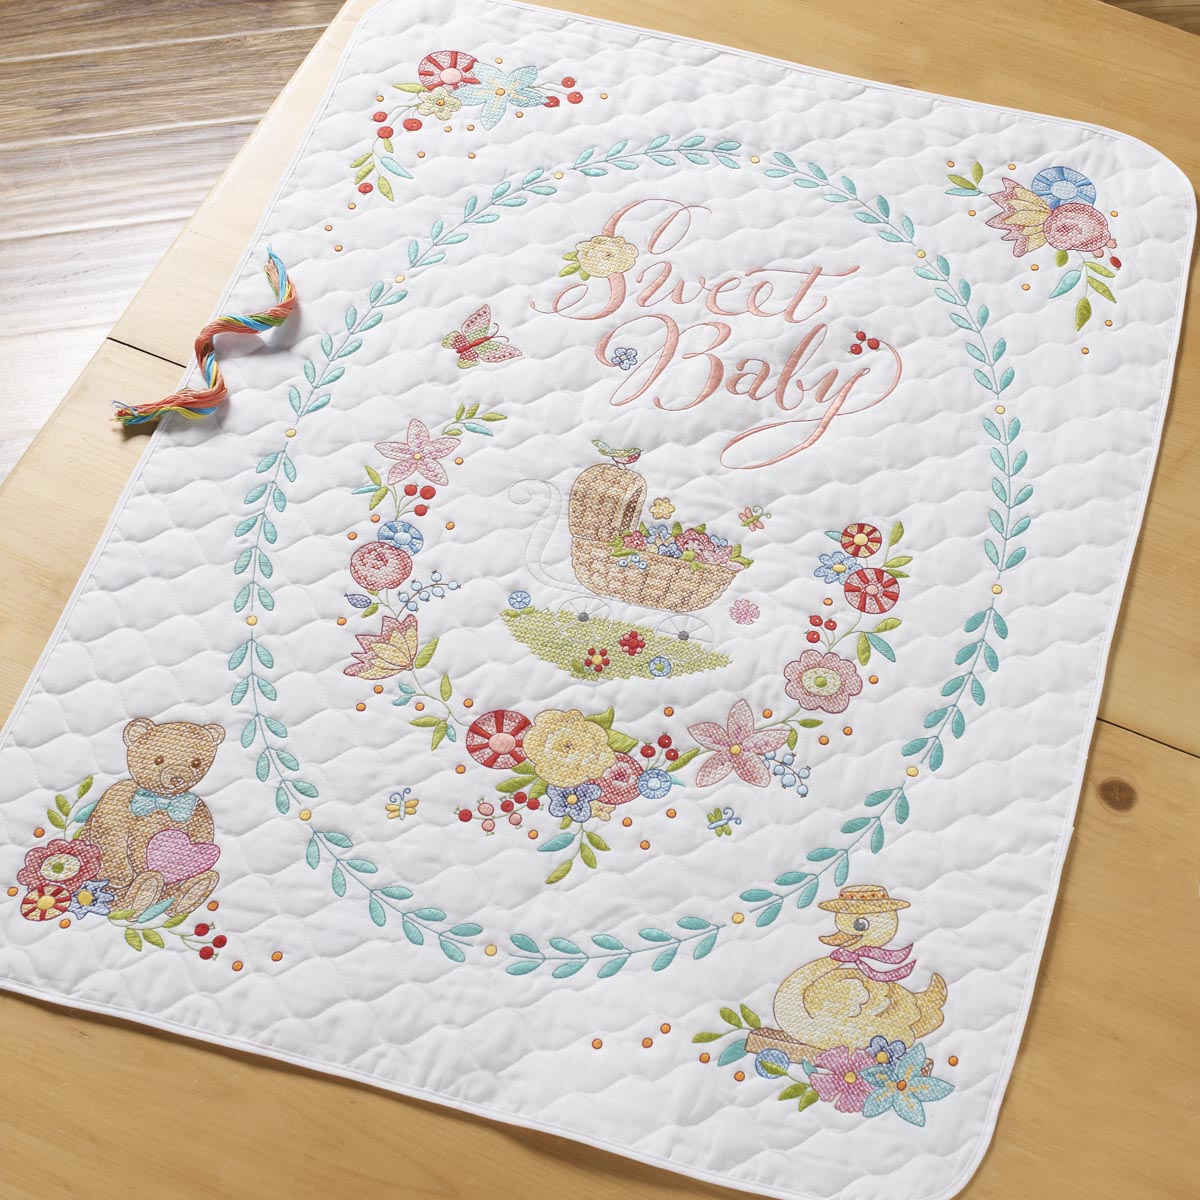 Bucilla ® Baby - Stamped Cross Stitch - Crib Ensembles - Sweet Baby - Crib Cover Kit - 47726